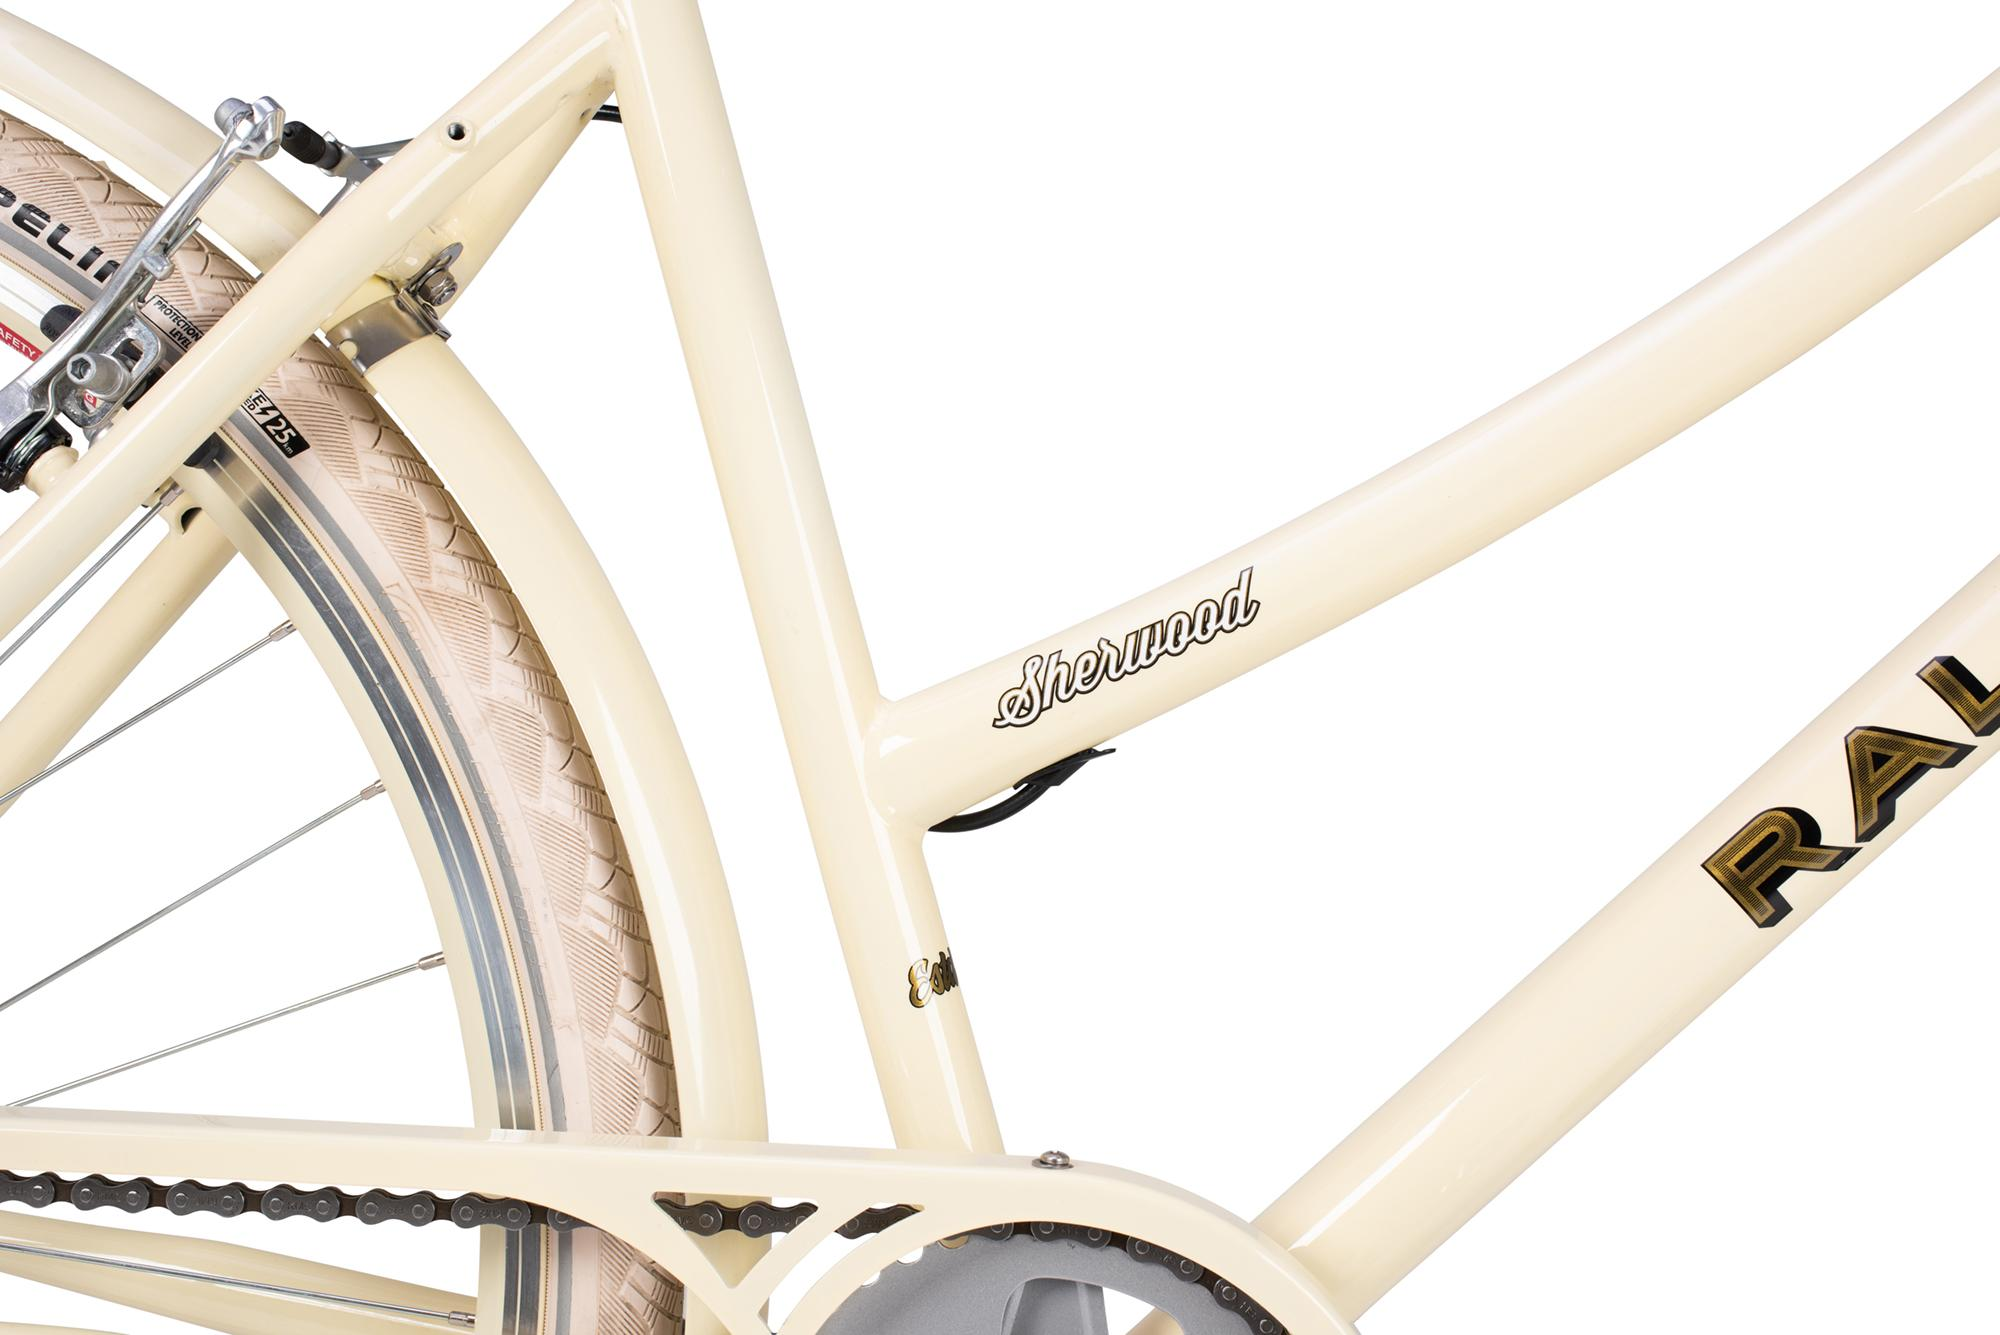 Chain guard on the Raleigh Sherwood classic ladies bike in milkshake colour